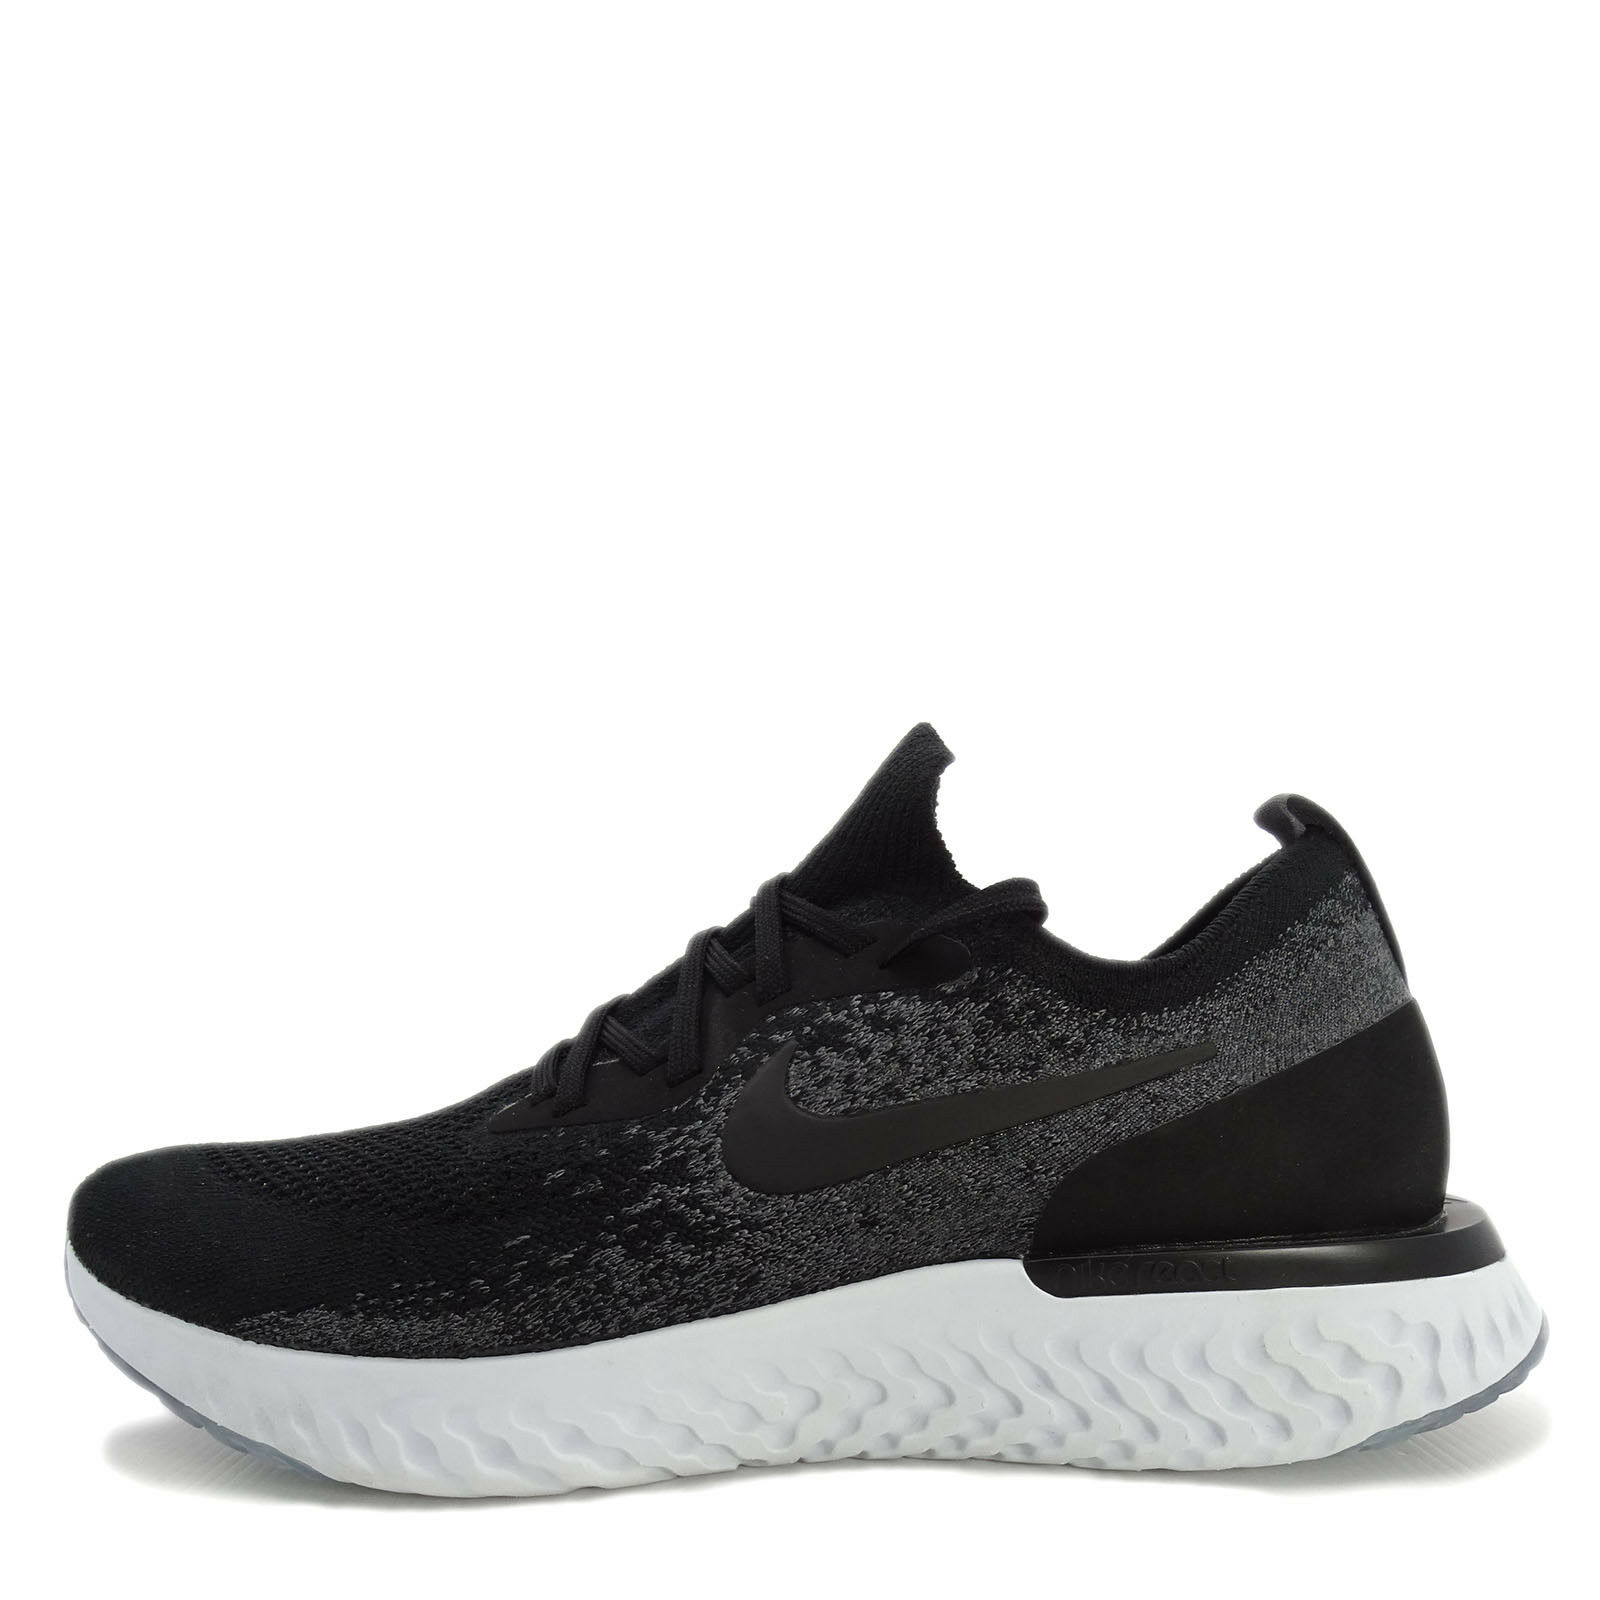 Nike Epic React Flyknit Price reduction Men Running Shoes Black/Dark Grey-Platinum The latest discount shoes for men and women